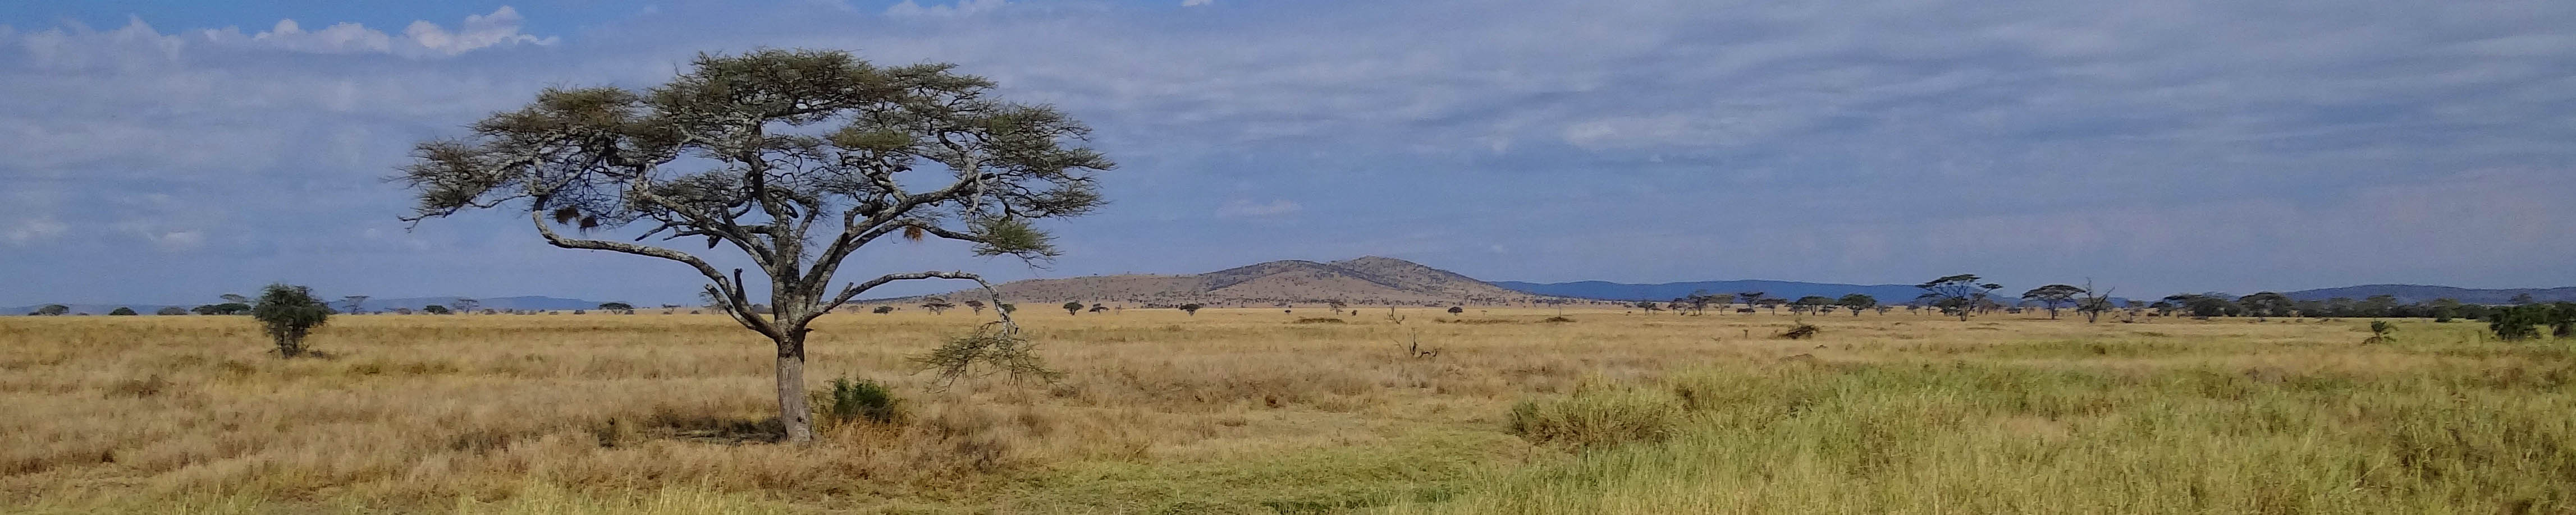 East Africa - Serengeti